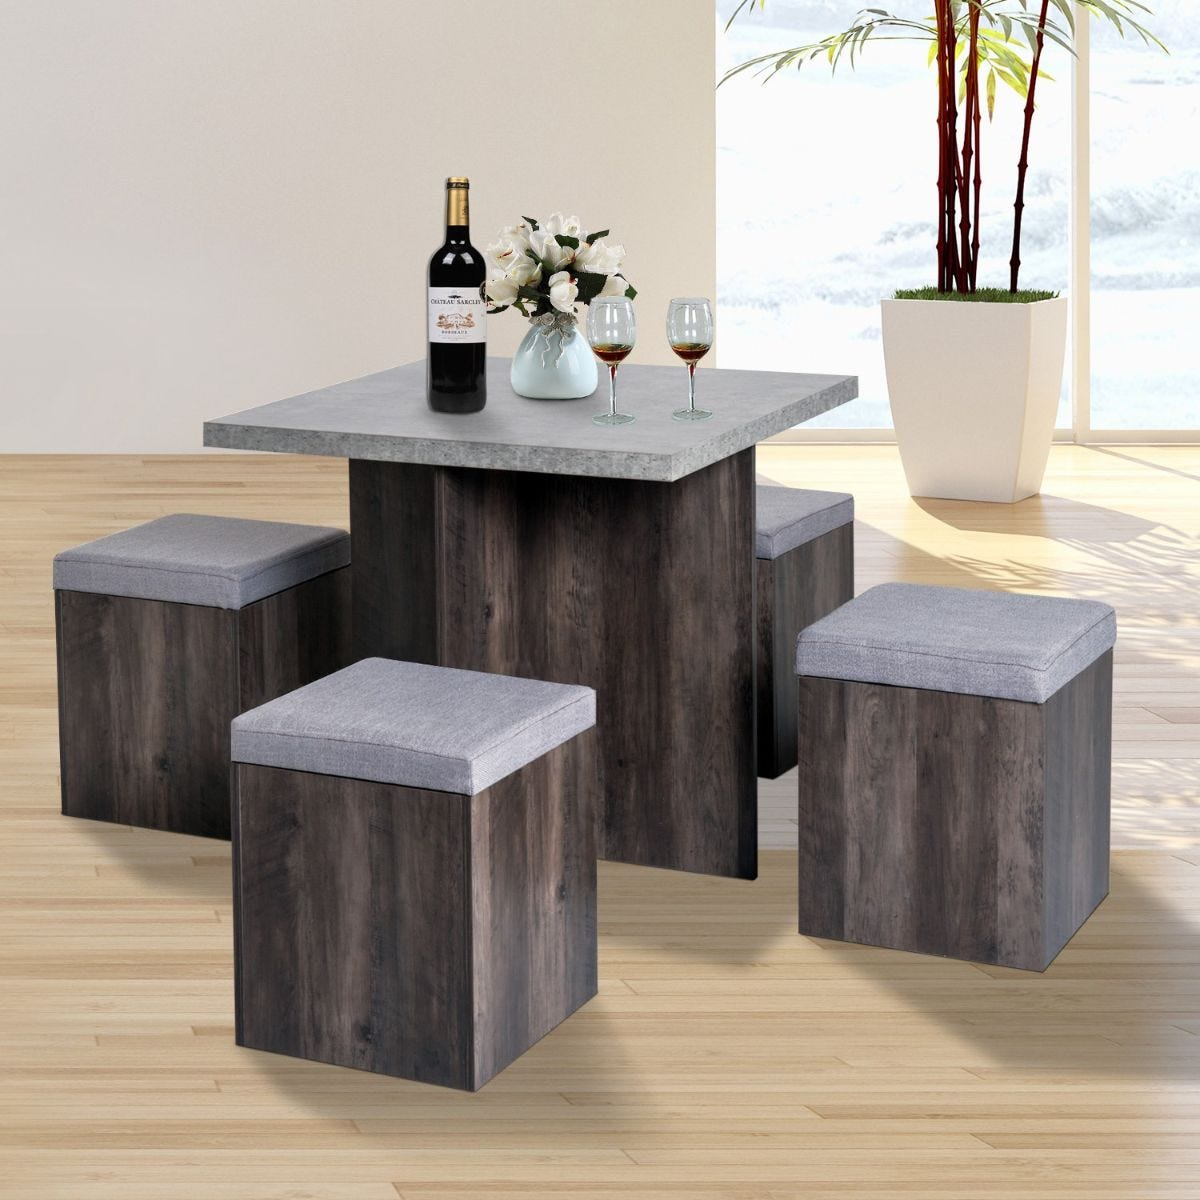 Space Saving 5 Piece Dining Table With 4 Ottoman Storage Seats Wood Effect